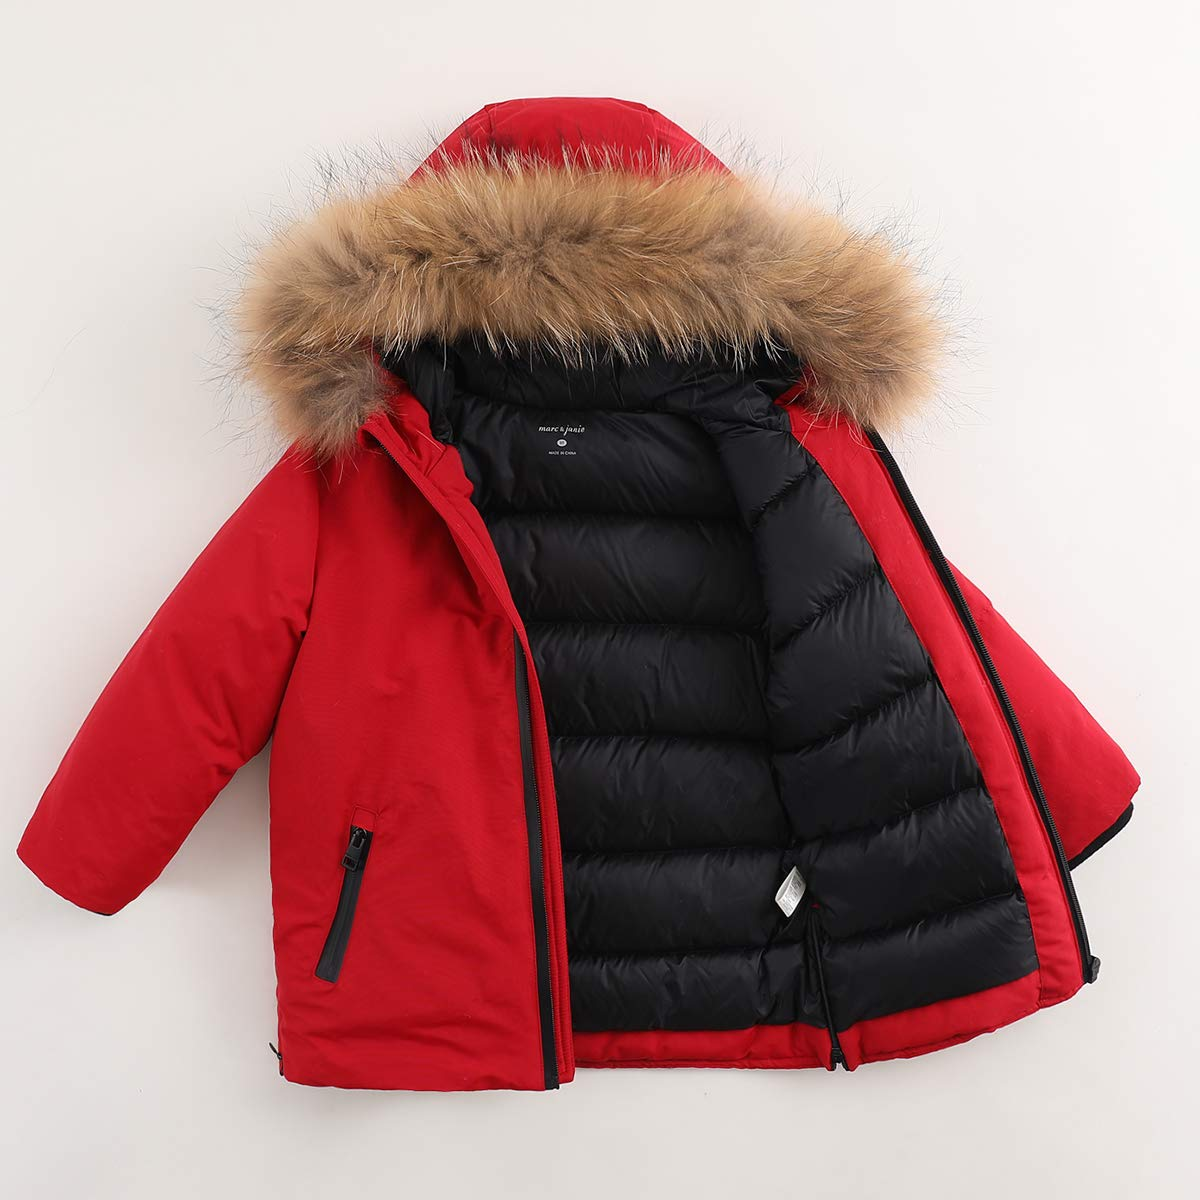 marc janie Boys Girls Lightweight Packable Hooded Down Puffer Jacket Raccoon Fur Collar Mid-Long